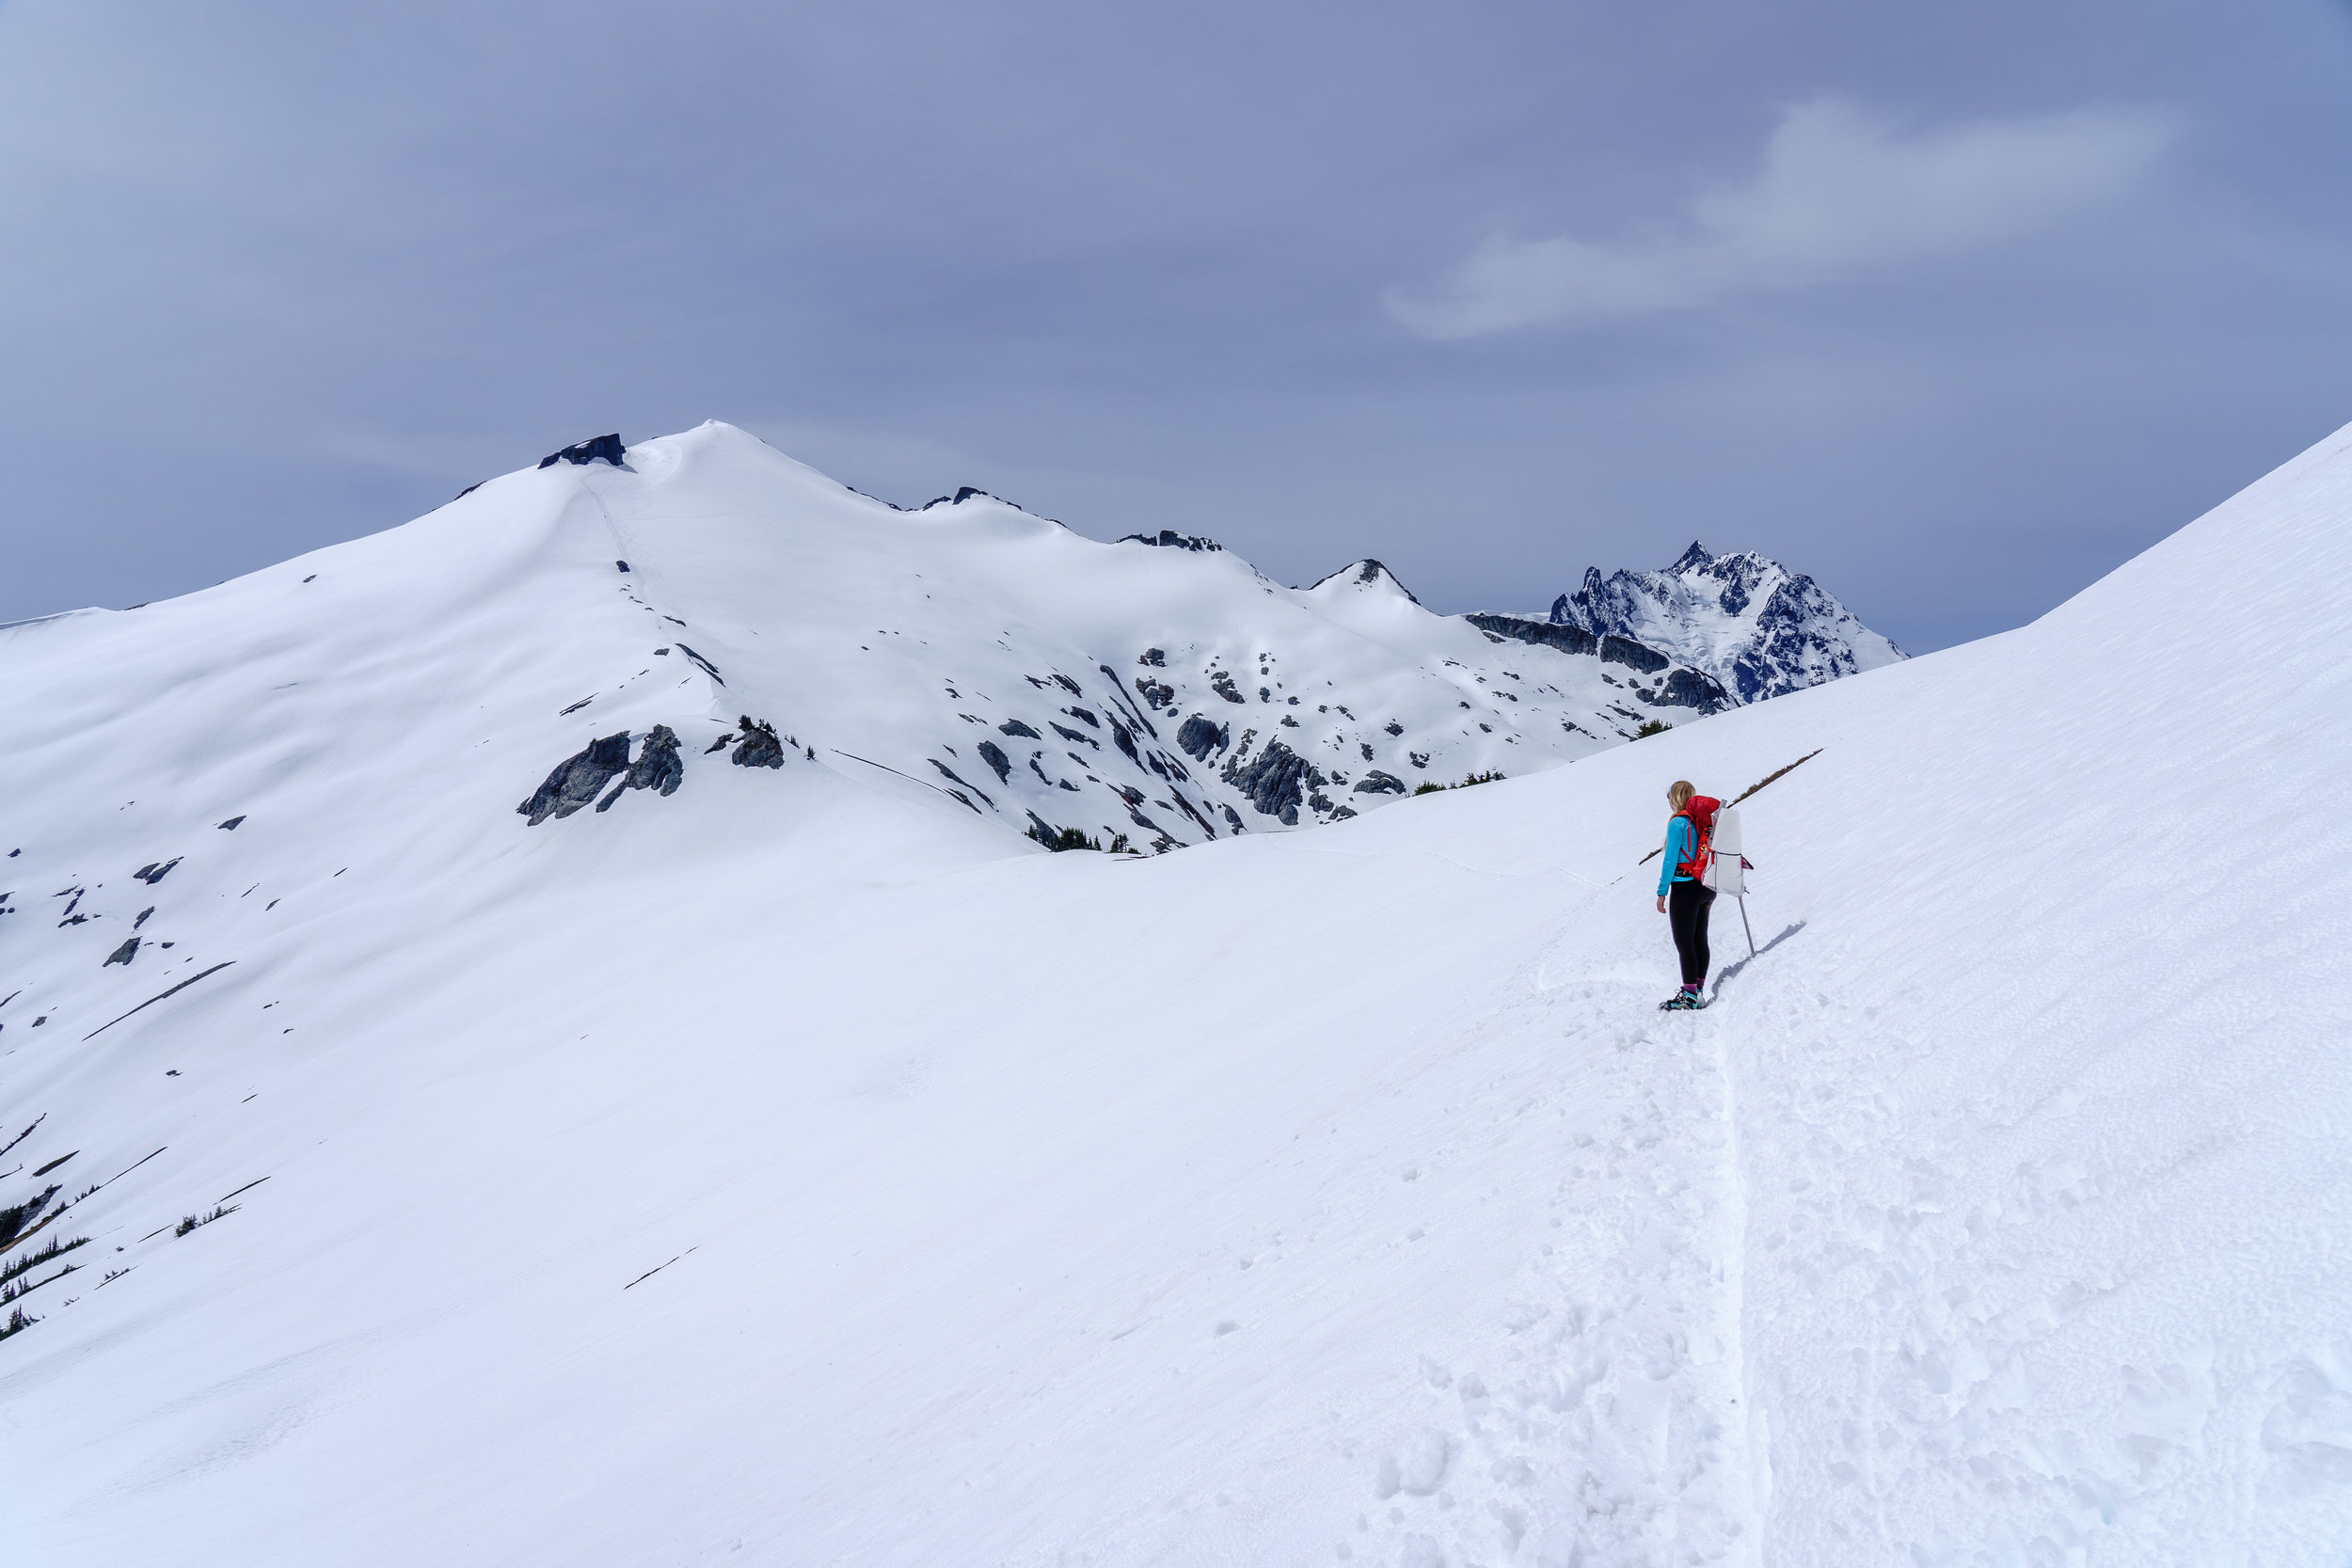 Ruth on the left. The route travels up the ridge and then to the right. Suksan on the right.